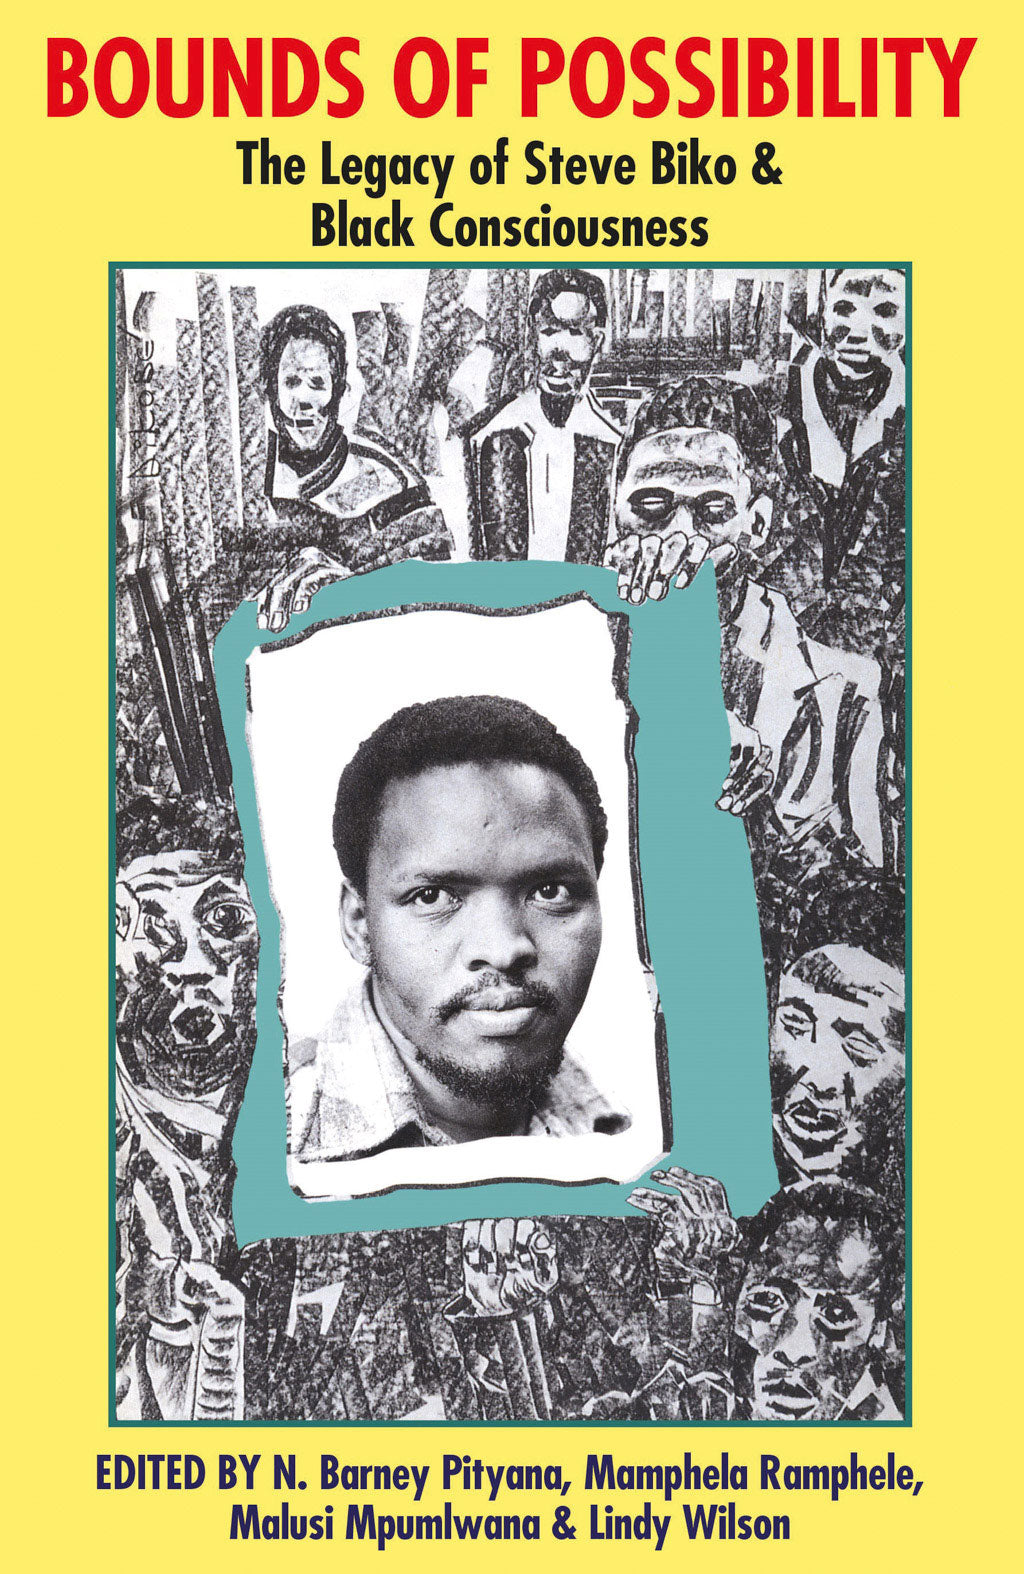 BOUNDS OF POSSIBILITY - THE LEGACY OF STEVE BIKO & BLACK CONSCIOUSNESS